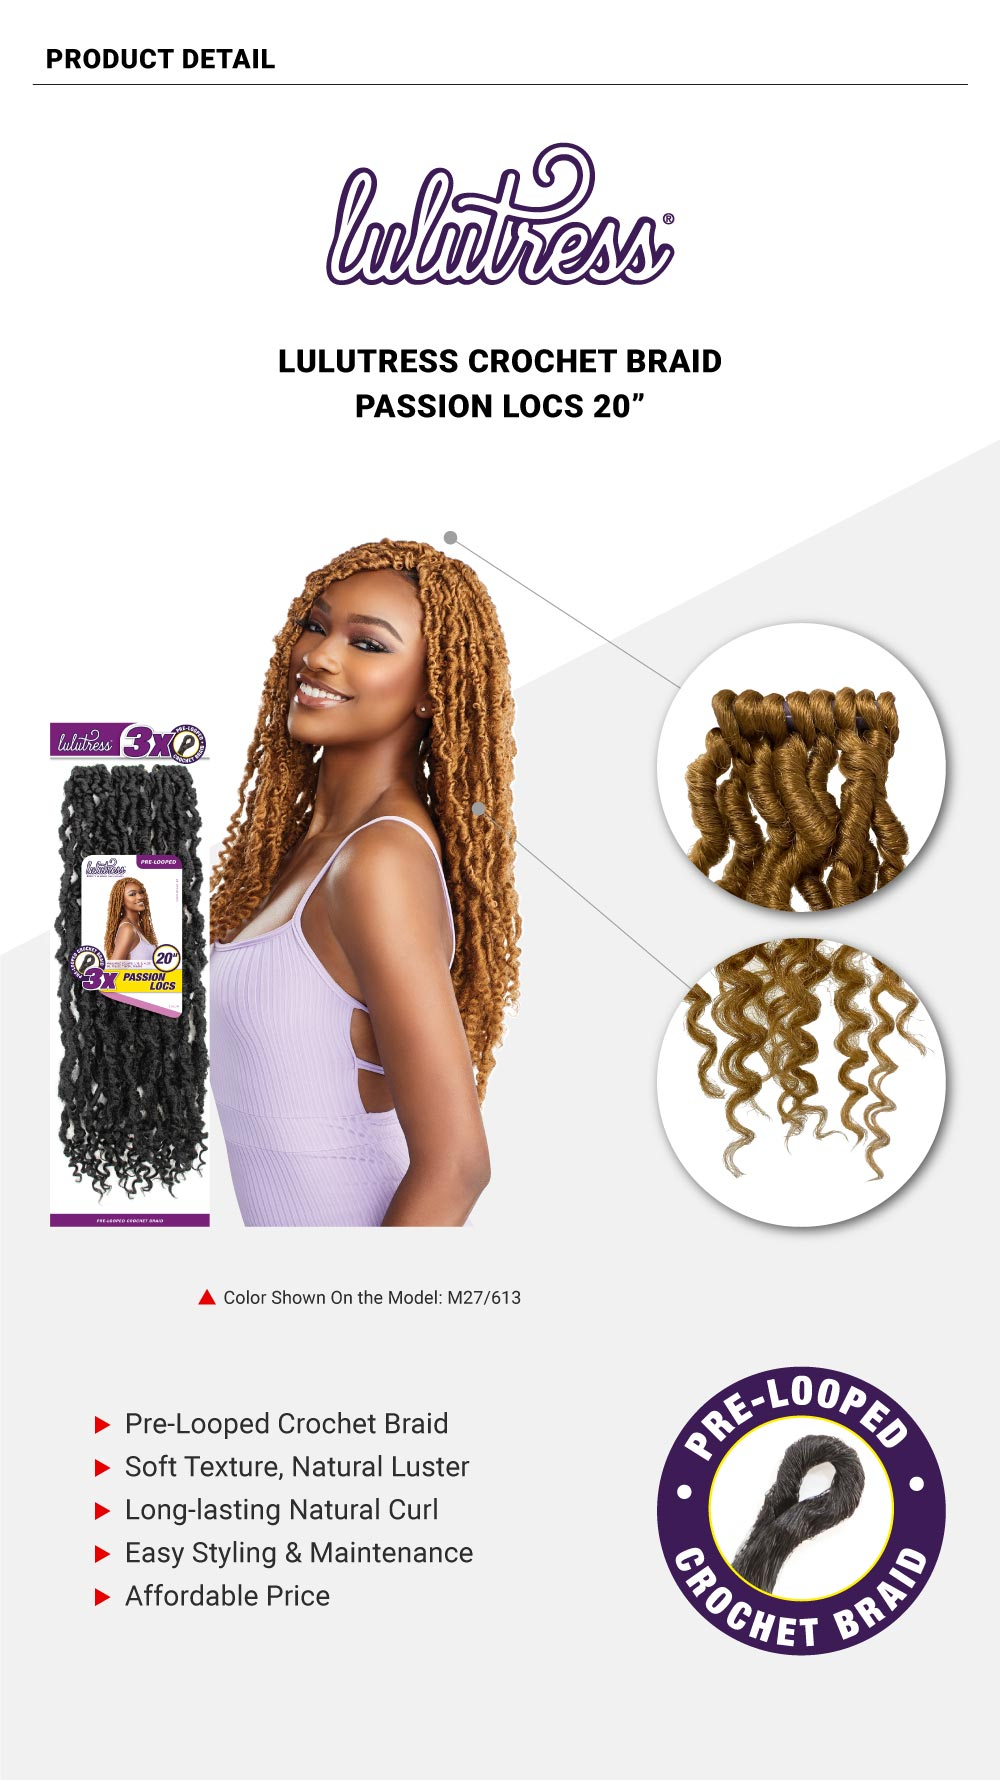 Sensationnel-Lulutress-Crochet-Braid-3X-Passion-Locs-20""